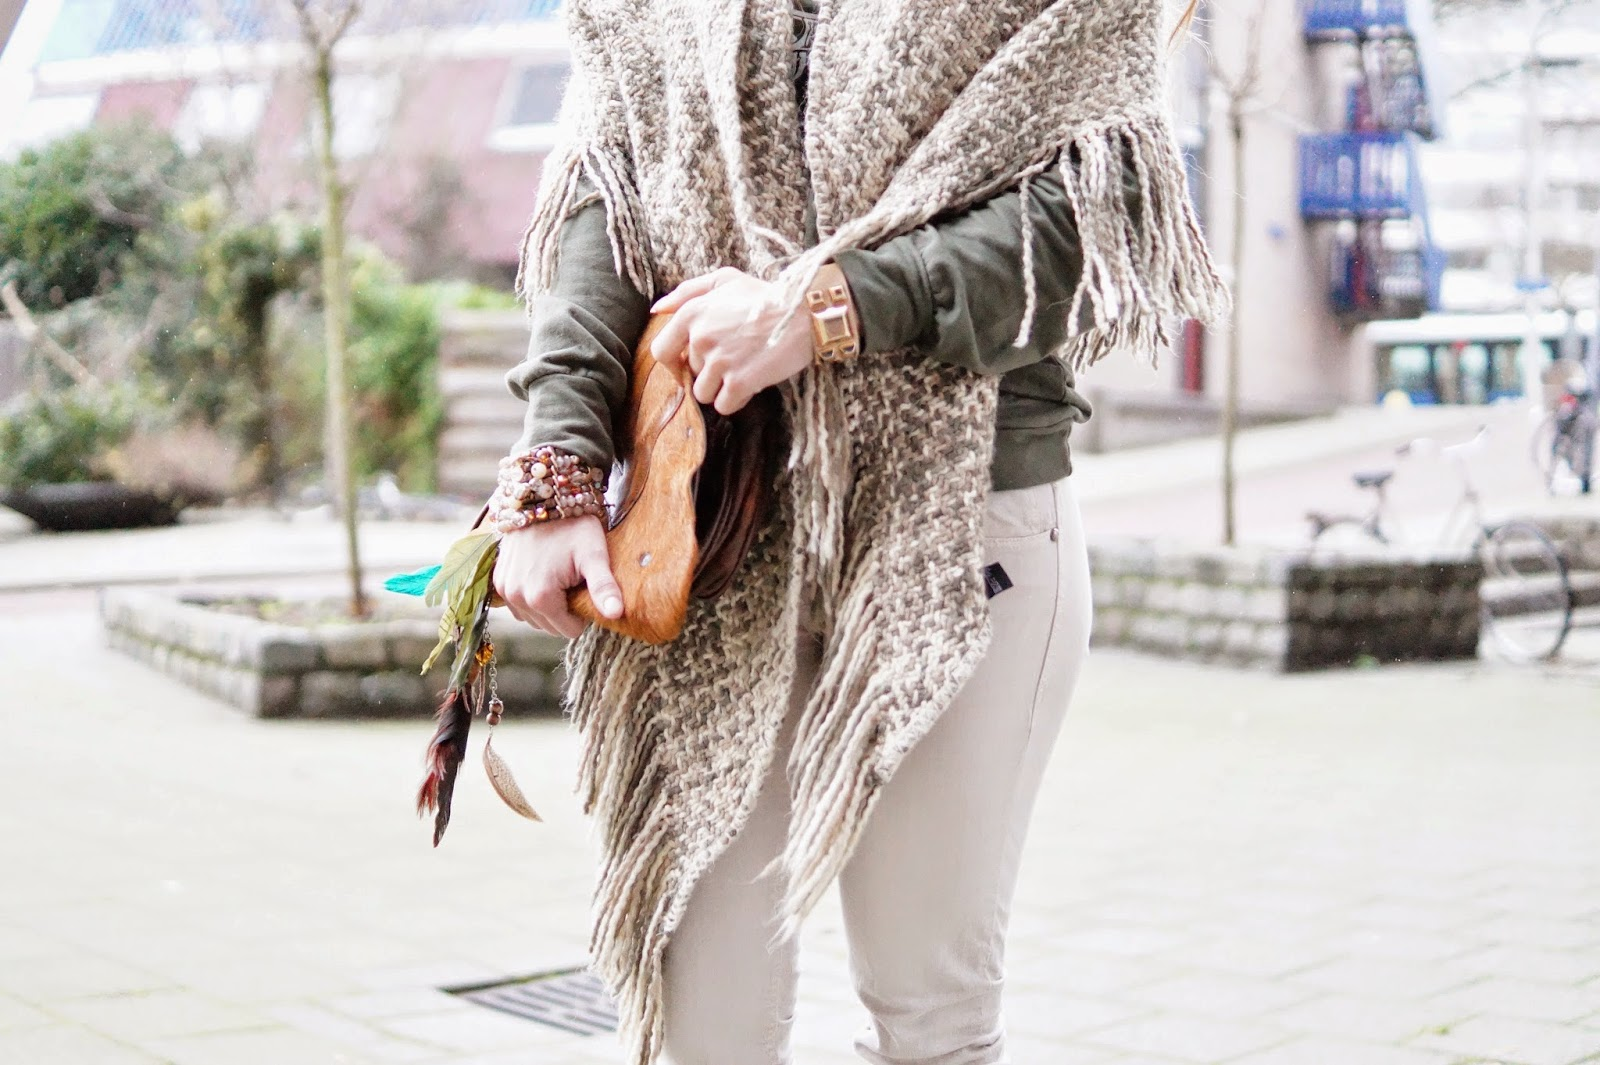 http://giientjeee.blogspot.nl/2015/01/wearing-my-big-poncho-scarf-today.html#more